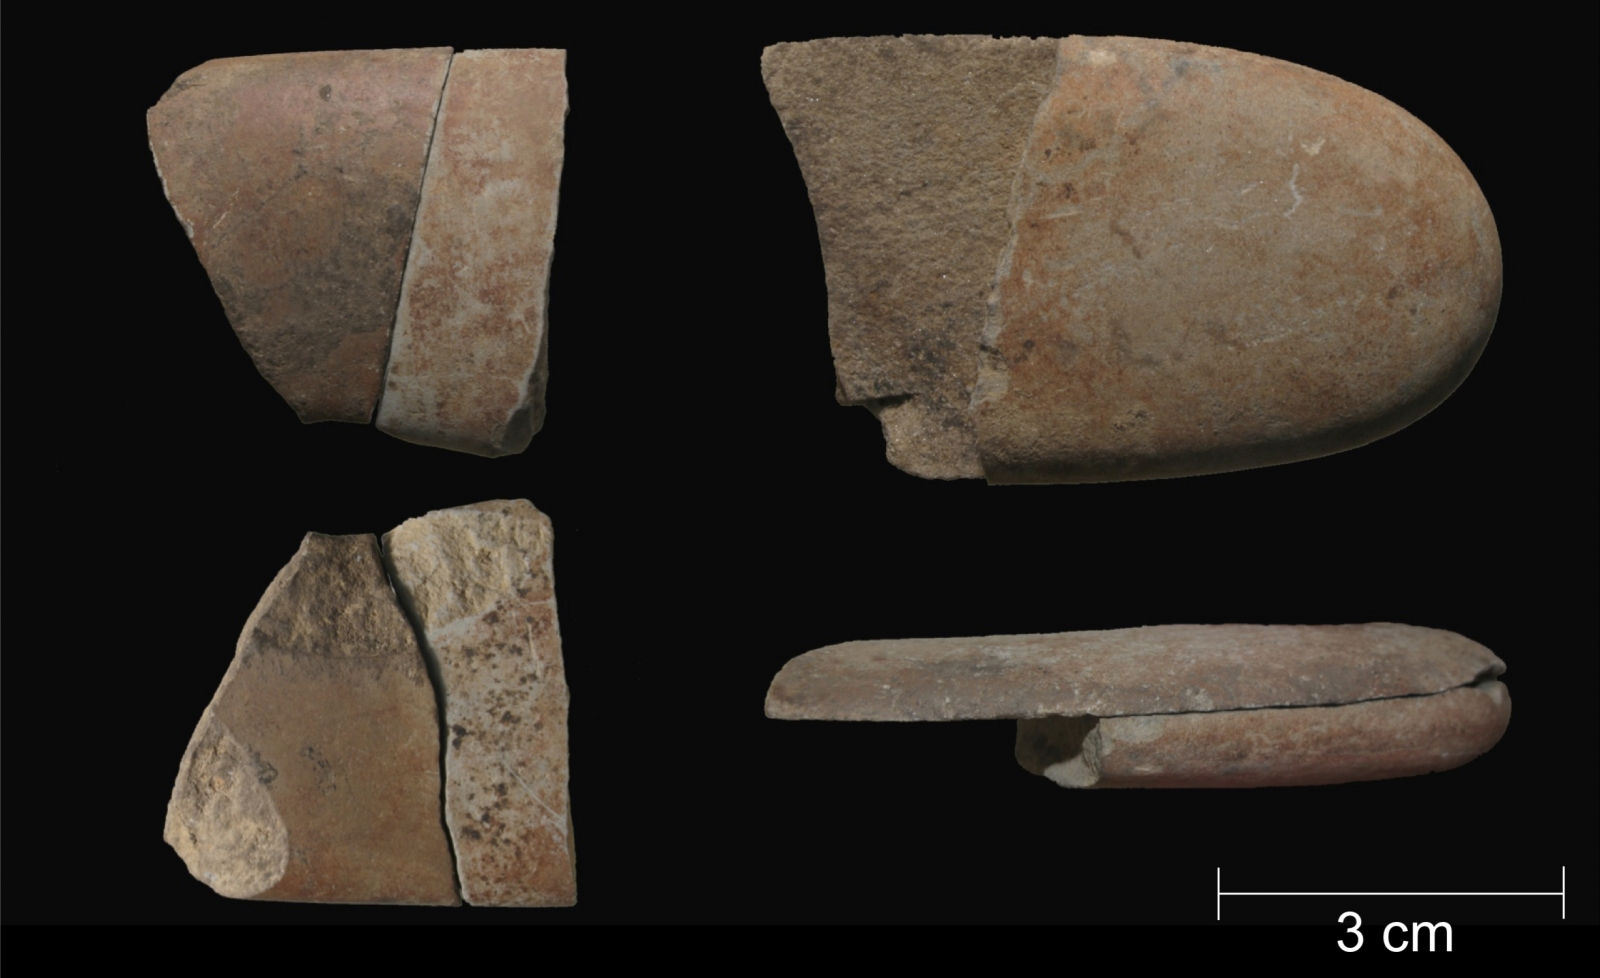 Palaeolithic death ritual pebbles